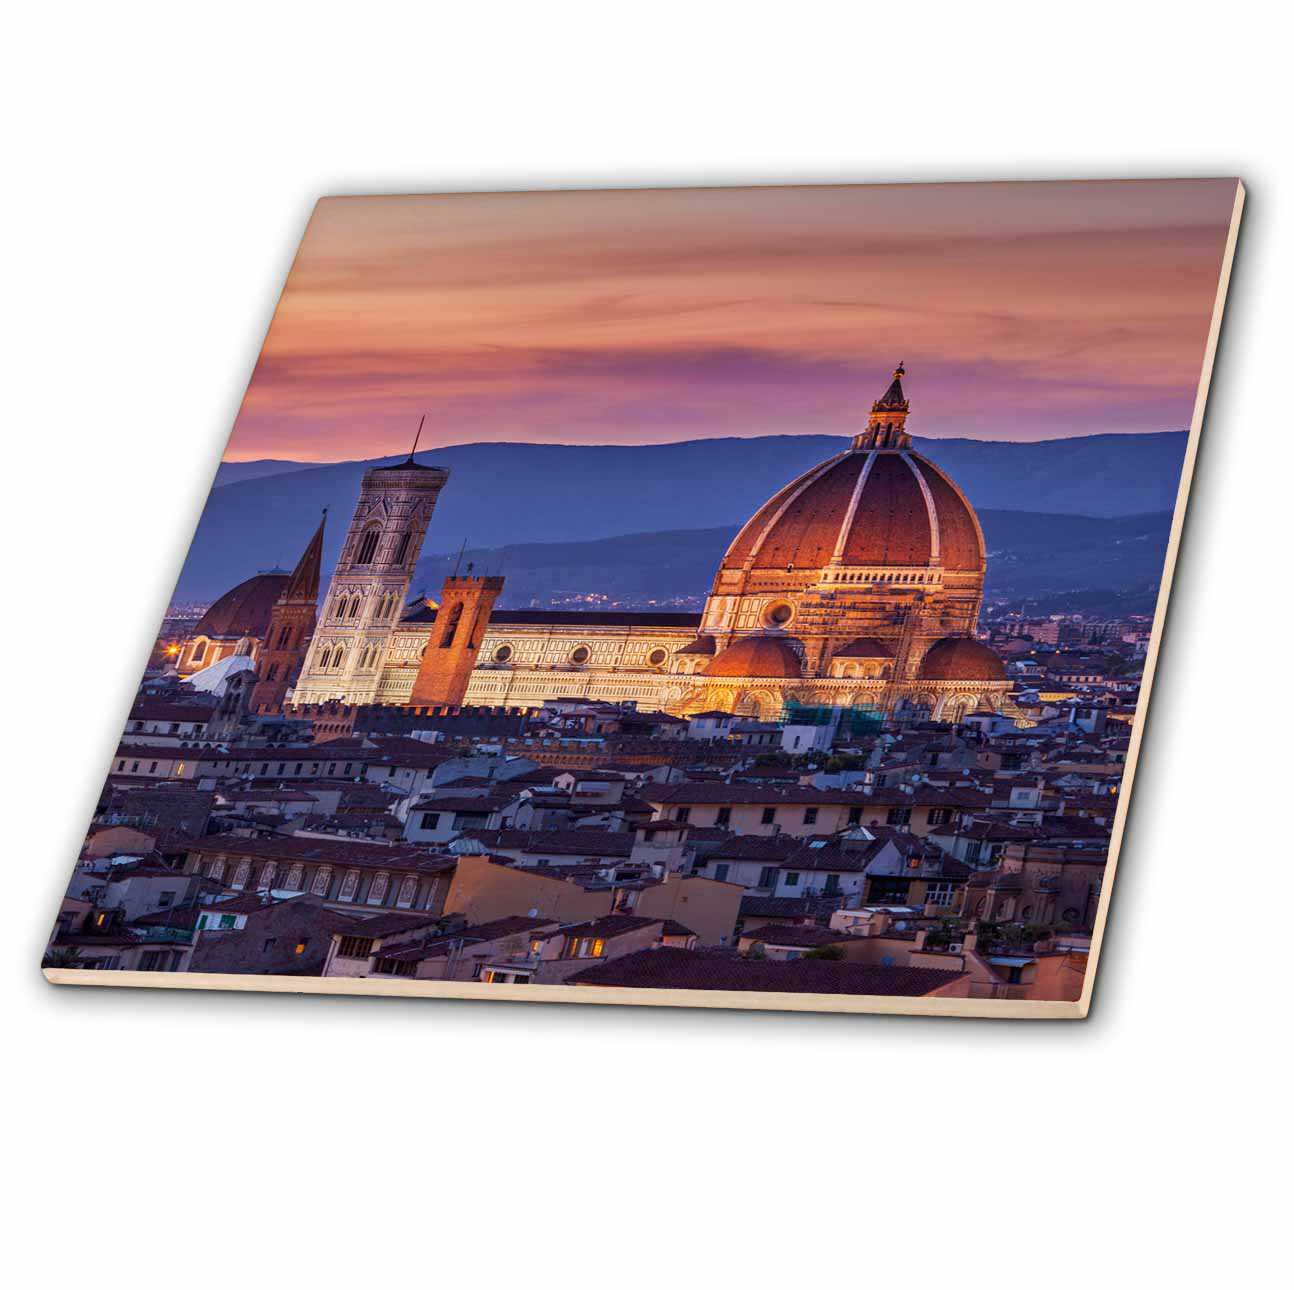 3dRose Twilight over the Duomo, Florence, Tuscany, Italy. - Ceramic Tile, 4-inch